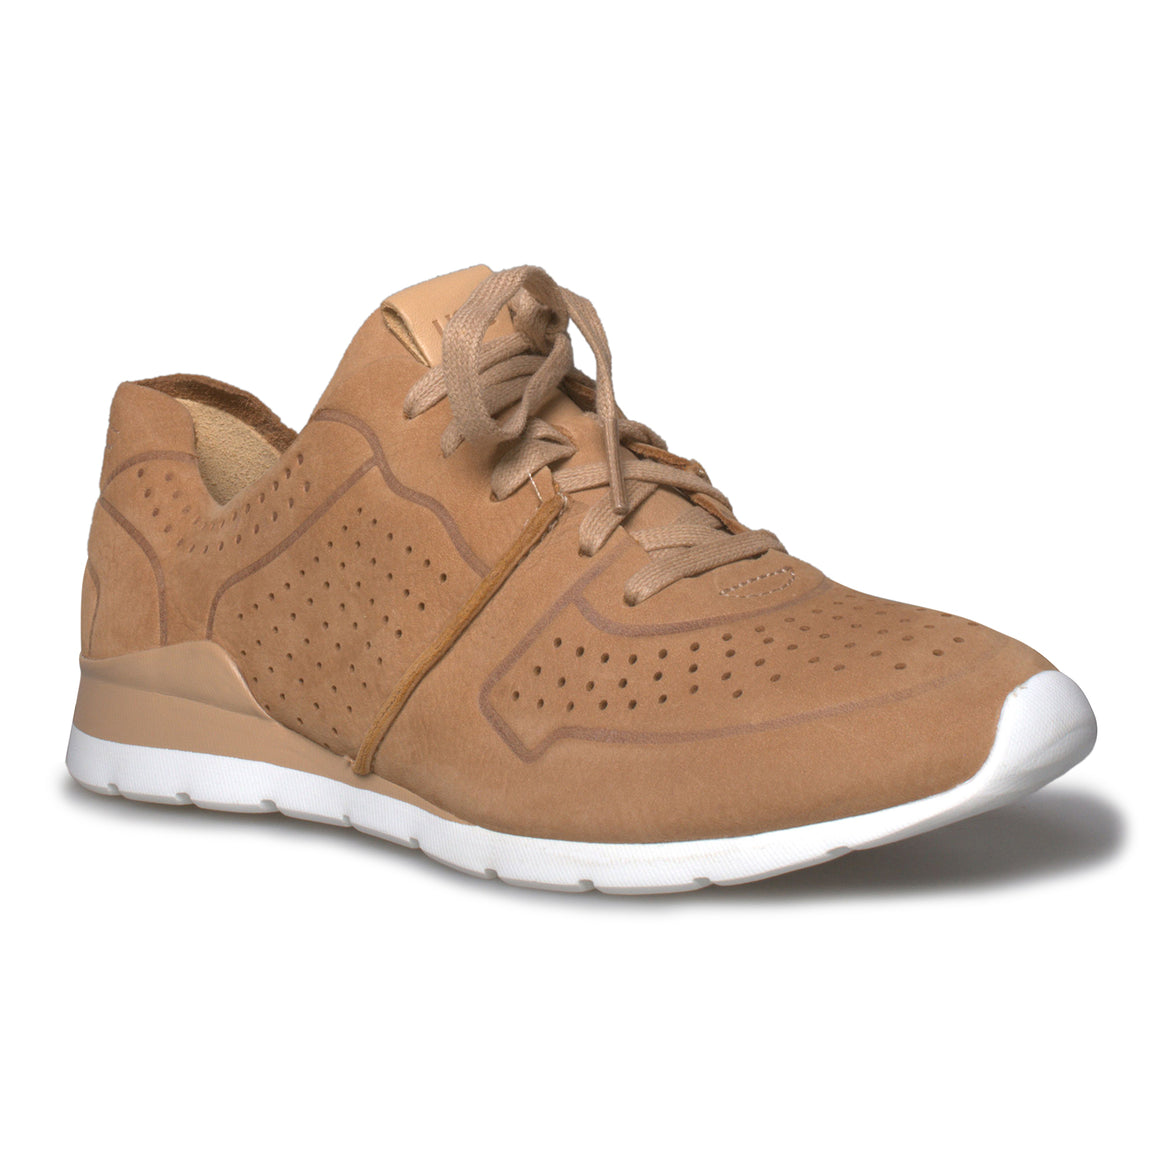 UGG Tye Arroyo Shoes - Women's